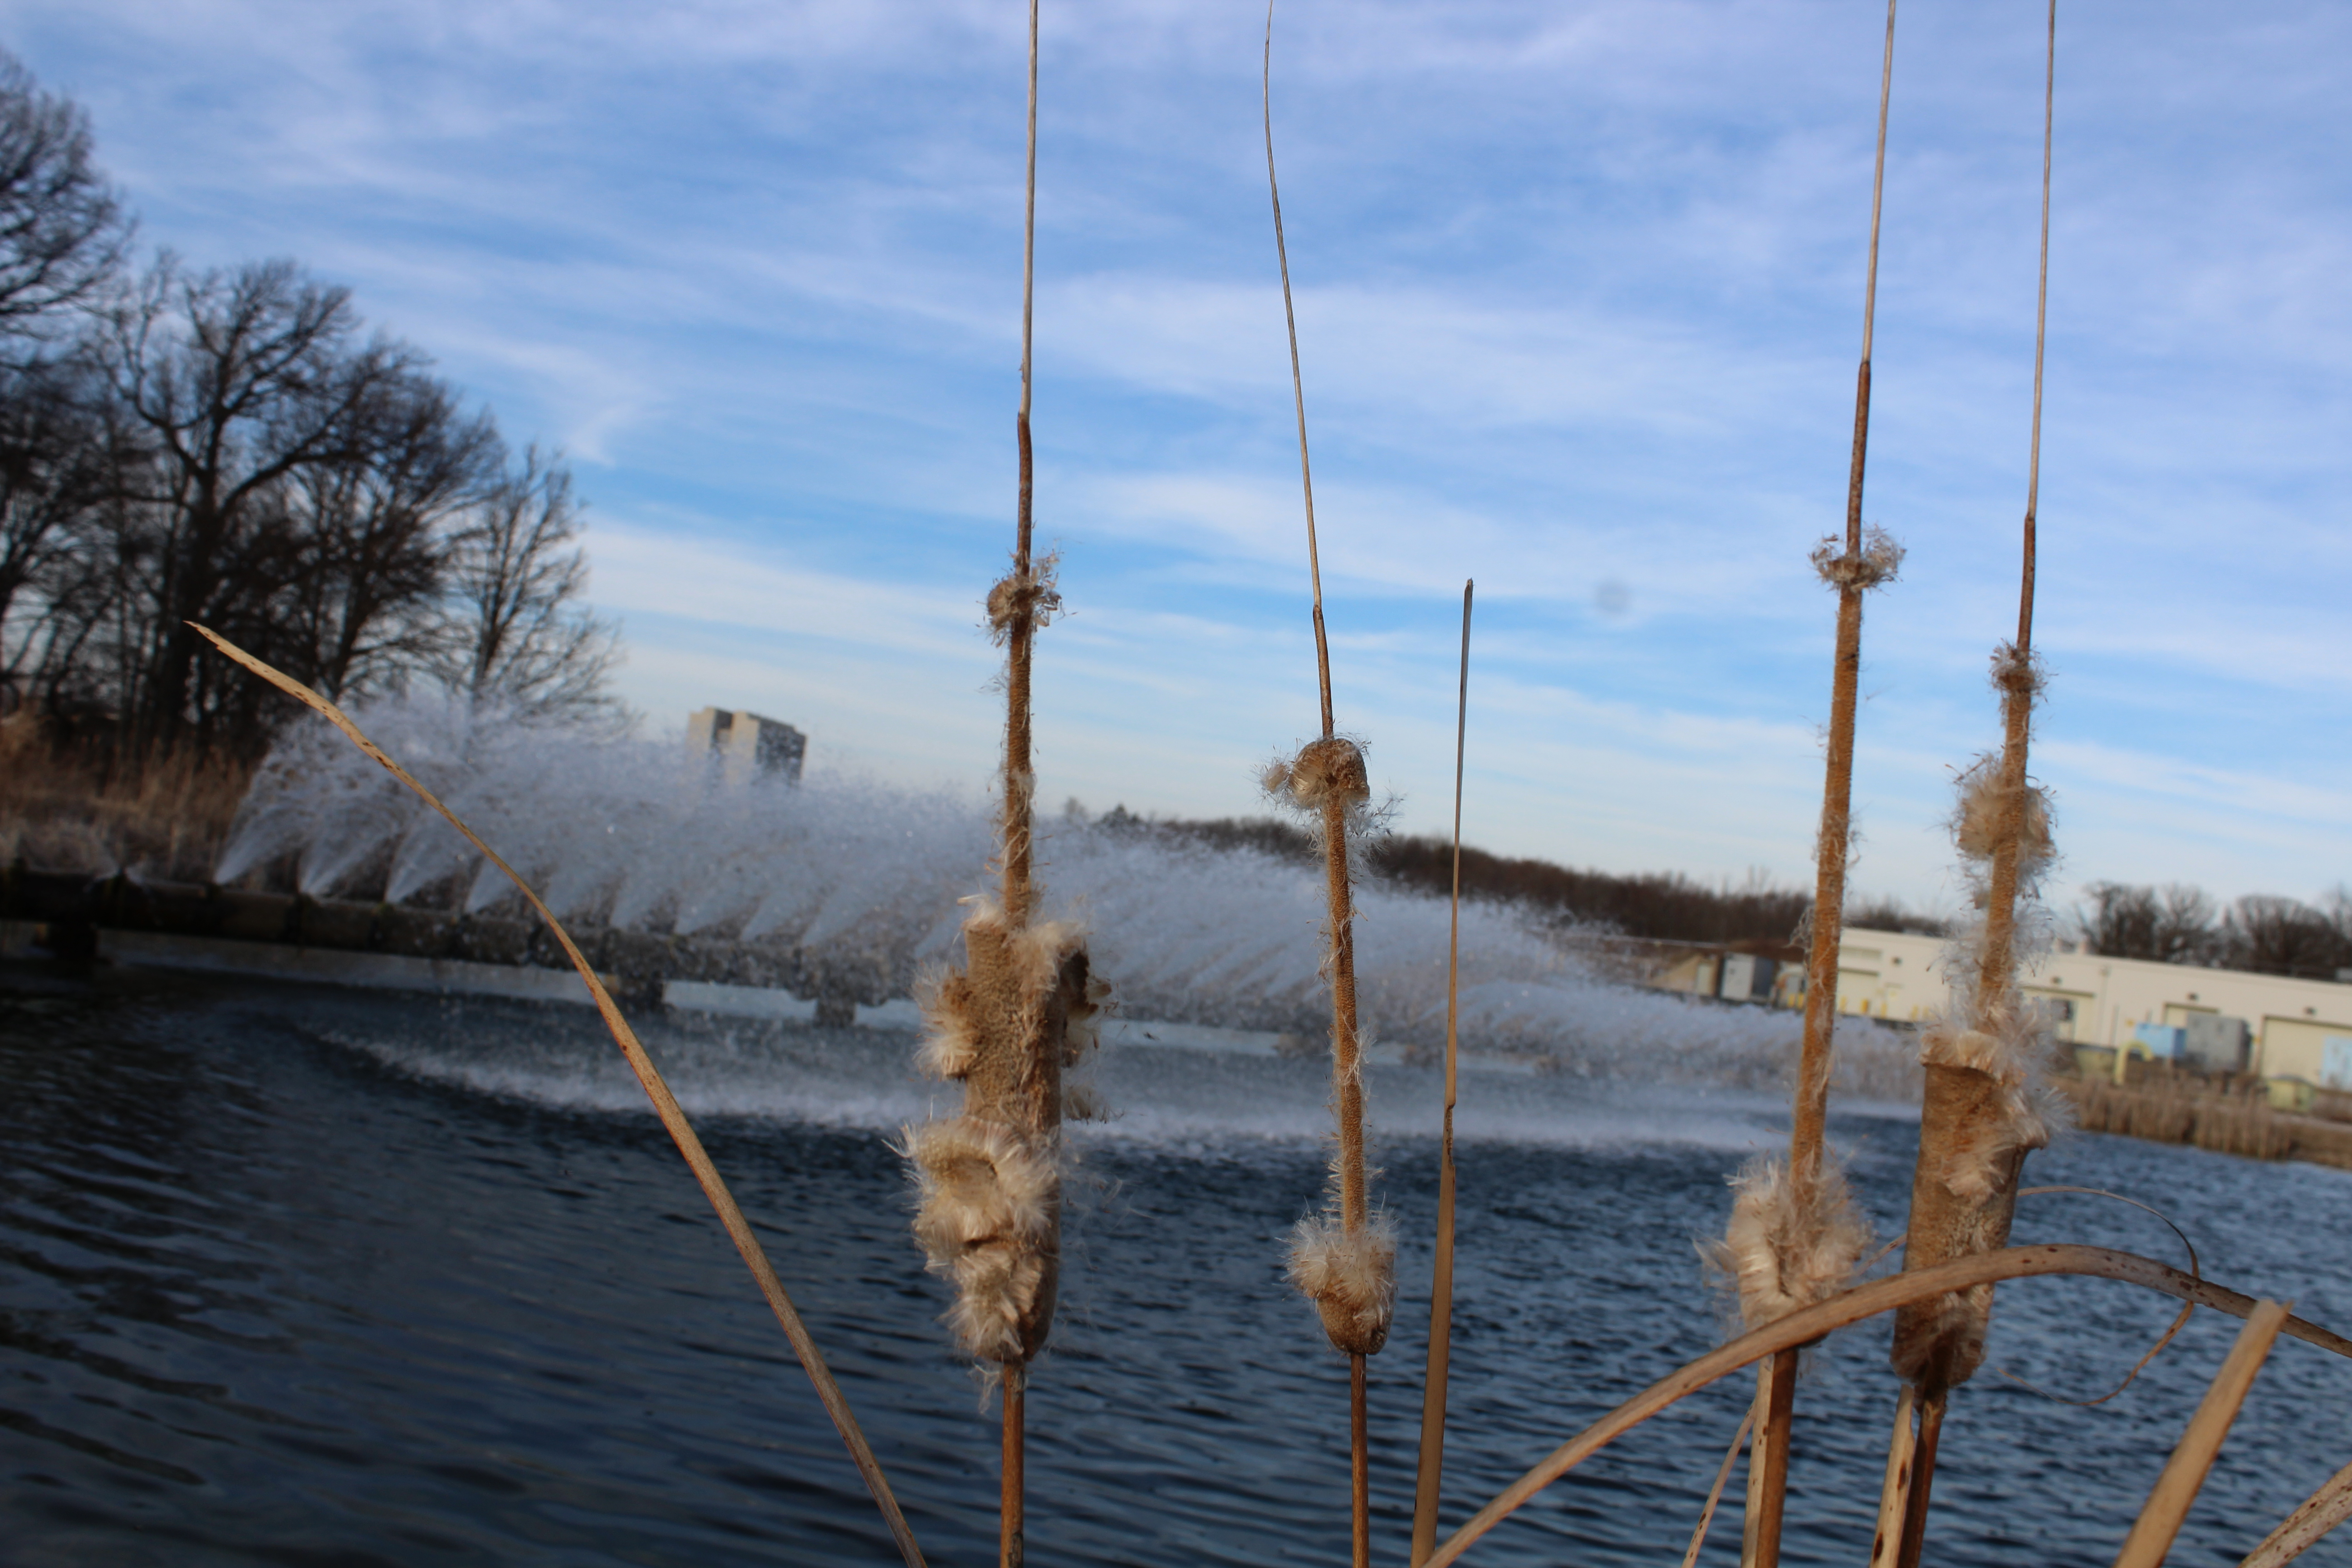 (3/4) On the same day the coyote was photographed, March 18, the Main Injector water jets were spraying into the pond. Photo: Zoe Toliopoulos Sherwin, Main Injector, water, pond